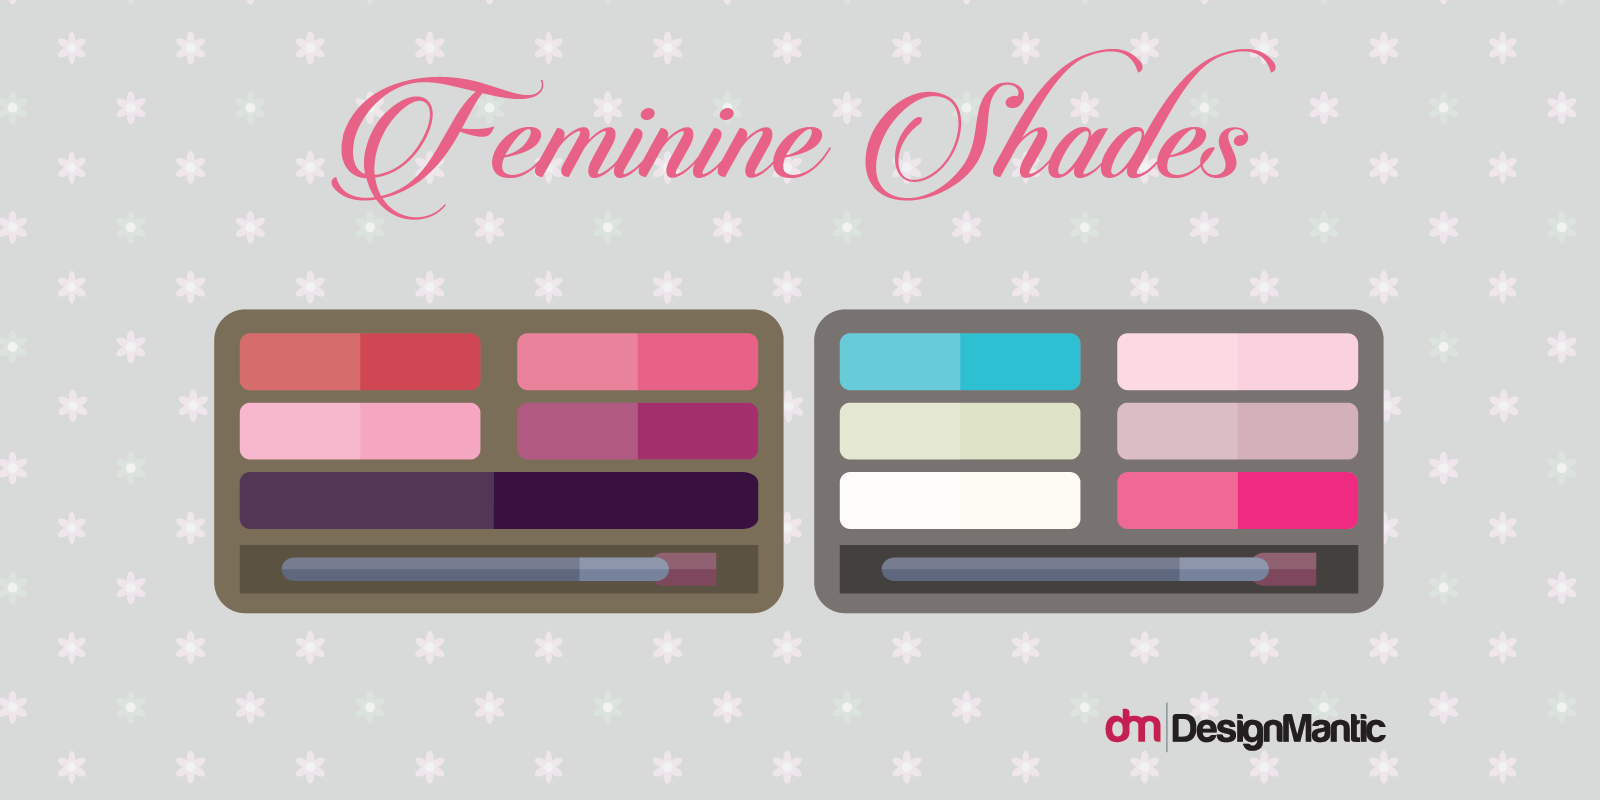 Suggested female gender-based colors schemes you can adopt for a feminine  look are as follows: